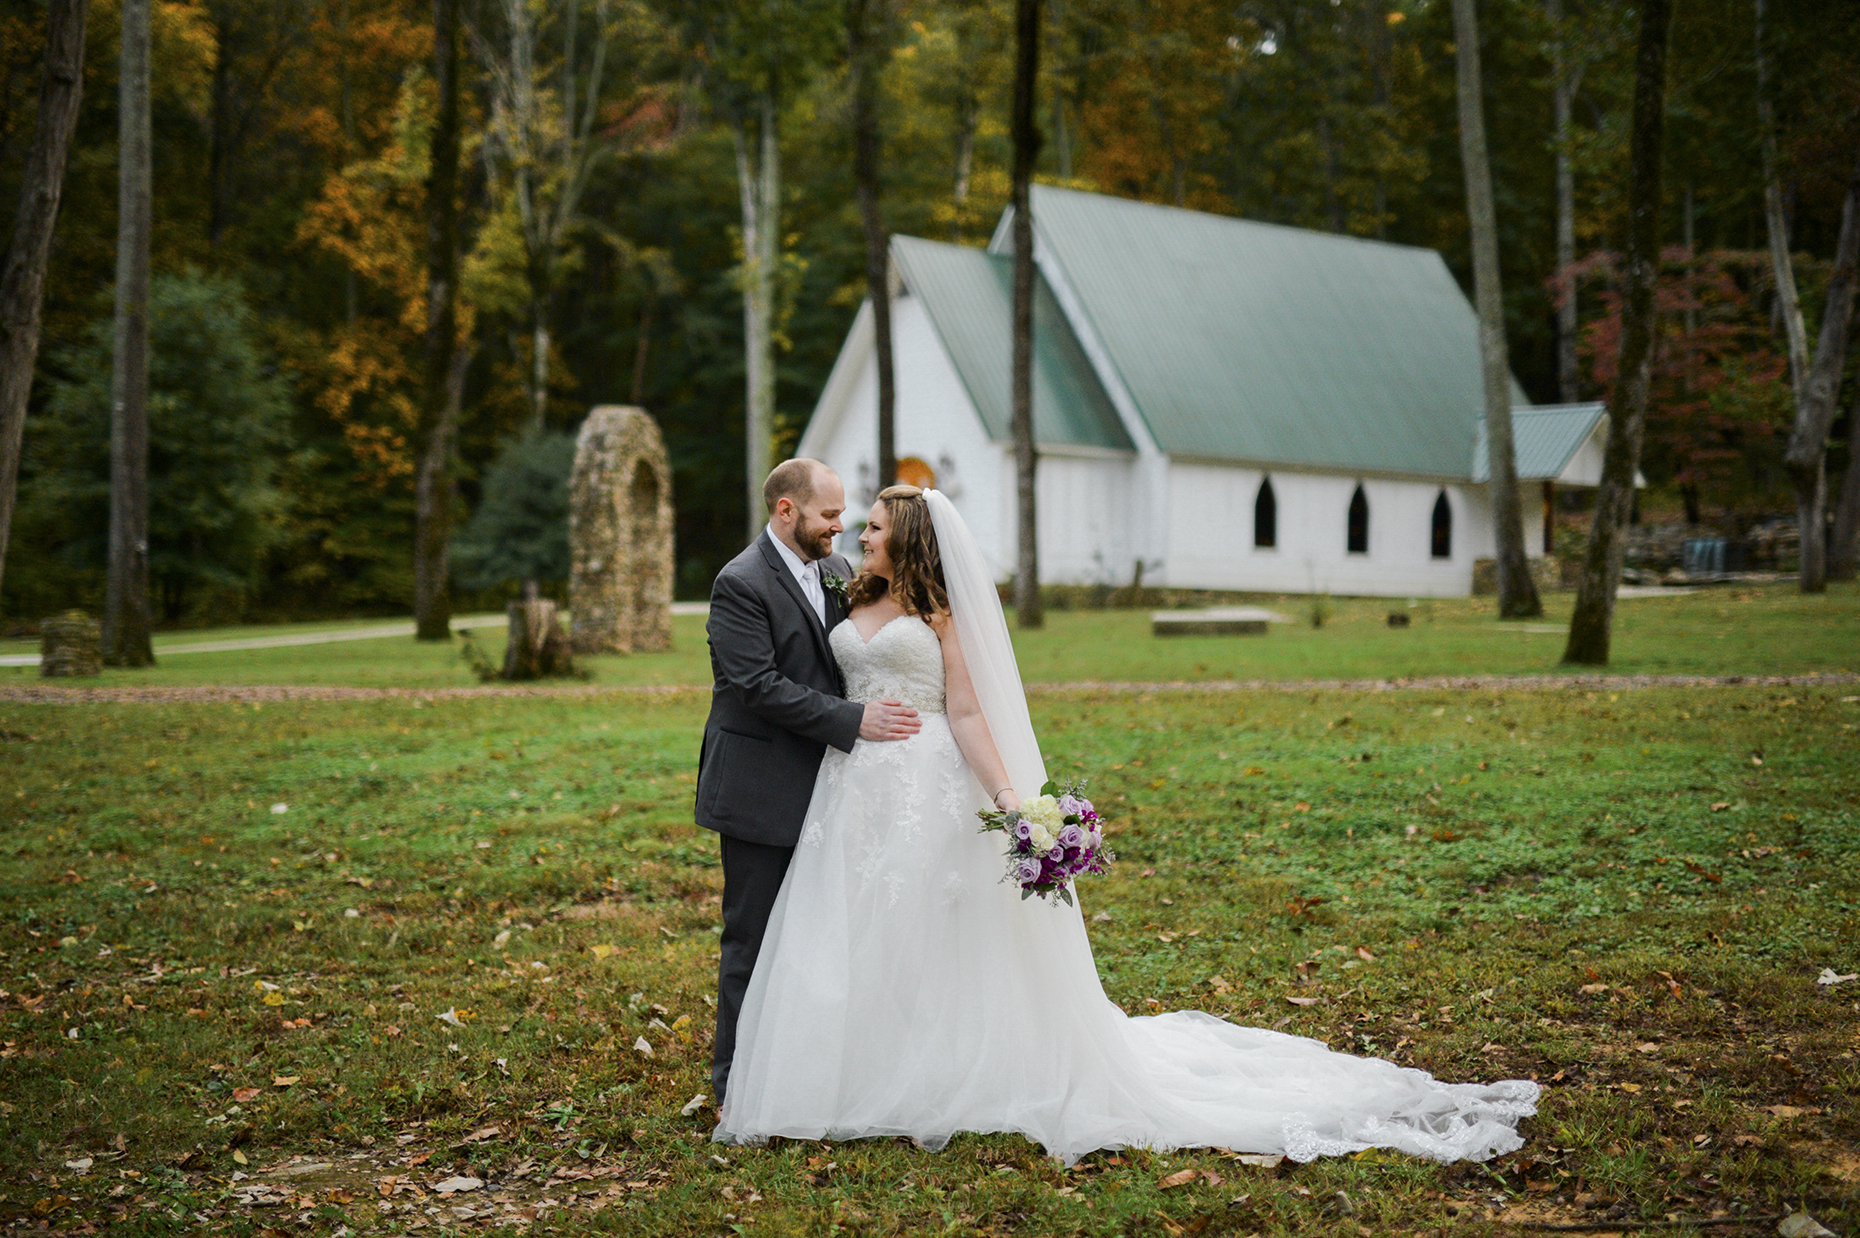 TiffanyHudginsPhotography-298